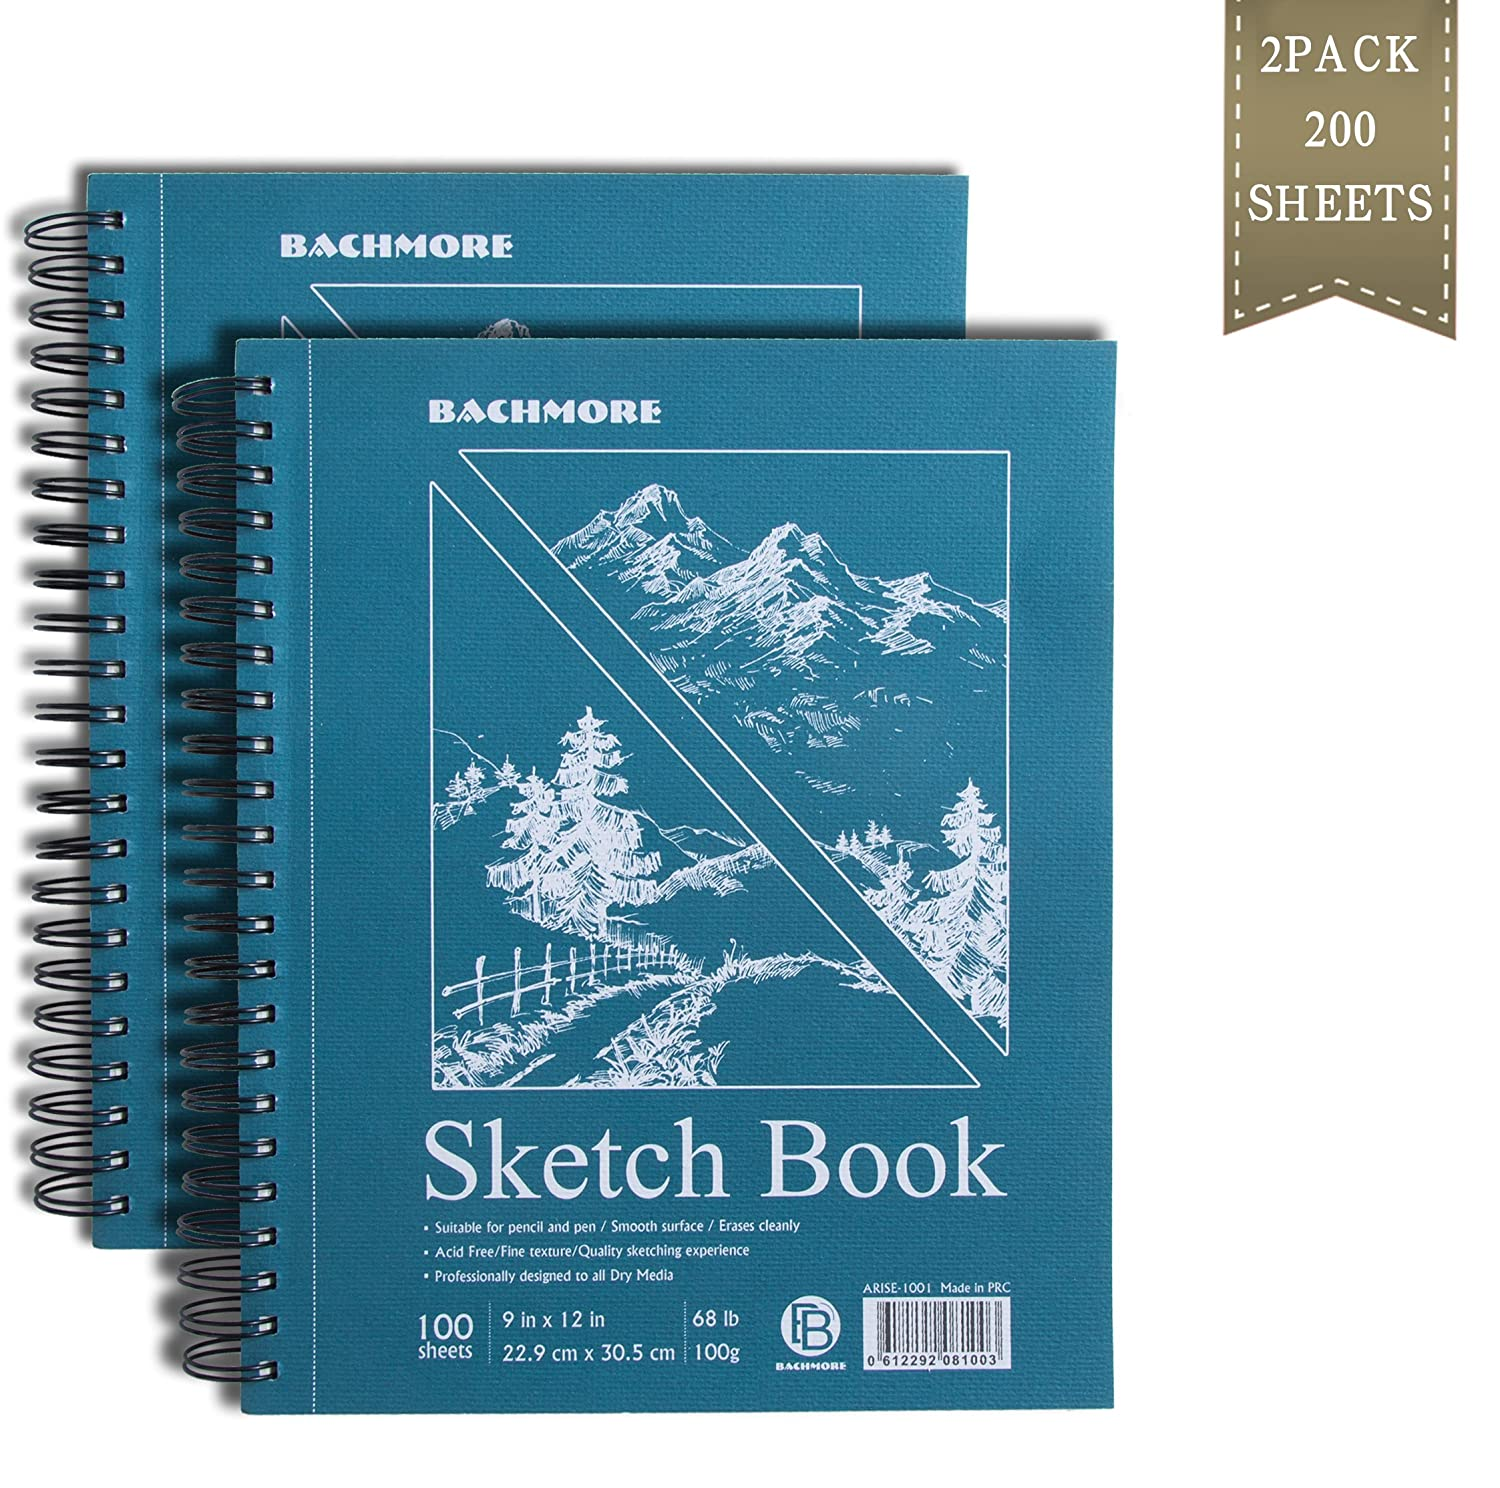 "Bachmore Sketchpad 9 X12"" Inch (68lb/100g), 200 Sheets Of Spiral Bound Sketch Book For Artist Pro & Amateurs 